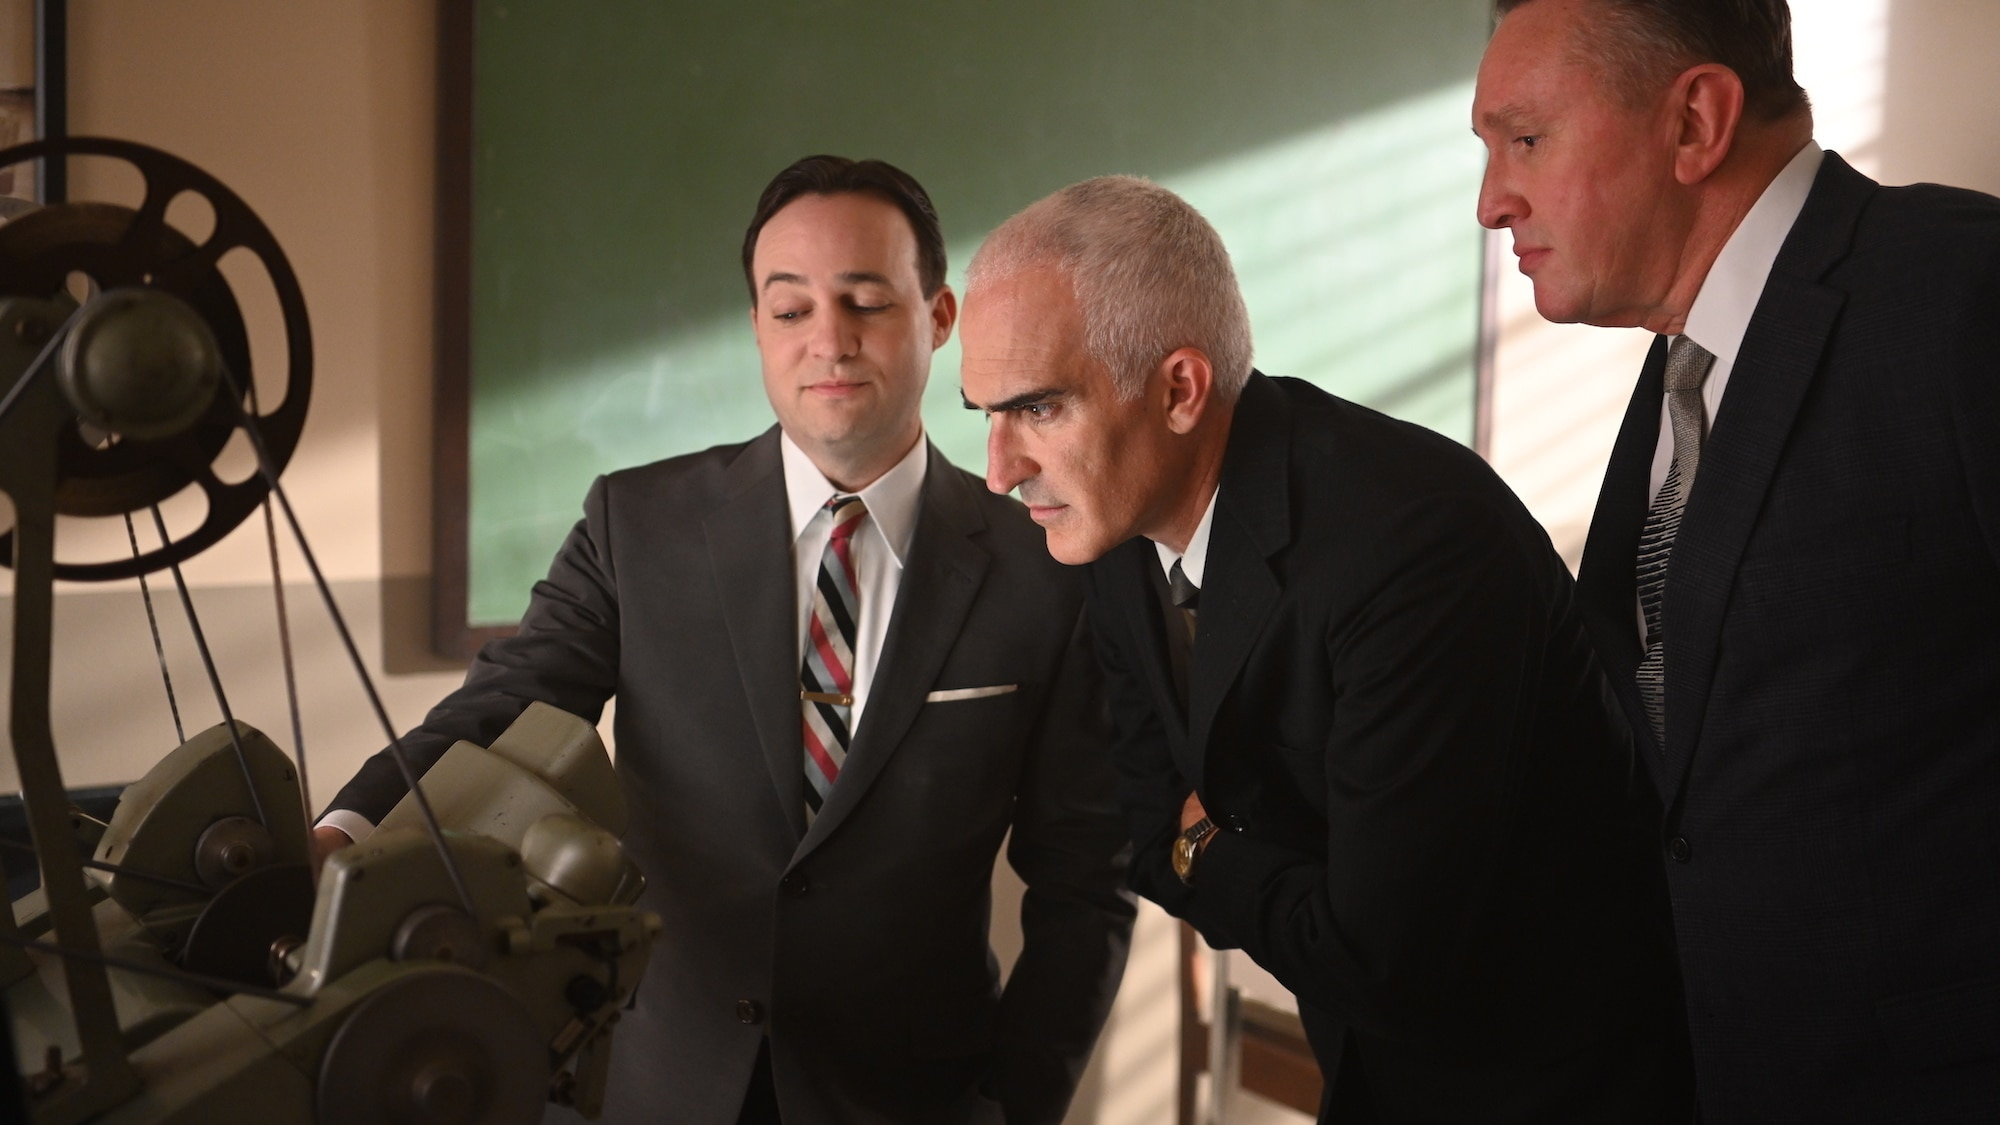 """L to R: John """"Shorty"""" Powers played by Danny Strong, Bob Gilruth played by Patrick Fischler and T. Keith Glennan Administrator of NASA played by Holland Hayes review press conference footage of the seven Mercury astronauts in National Geographic's THE RIG"""